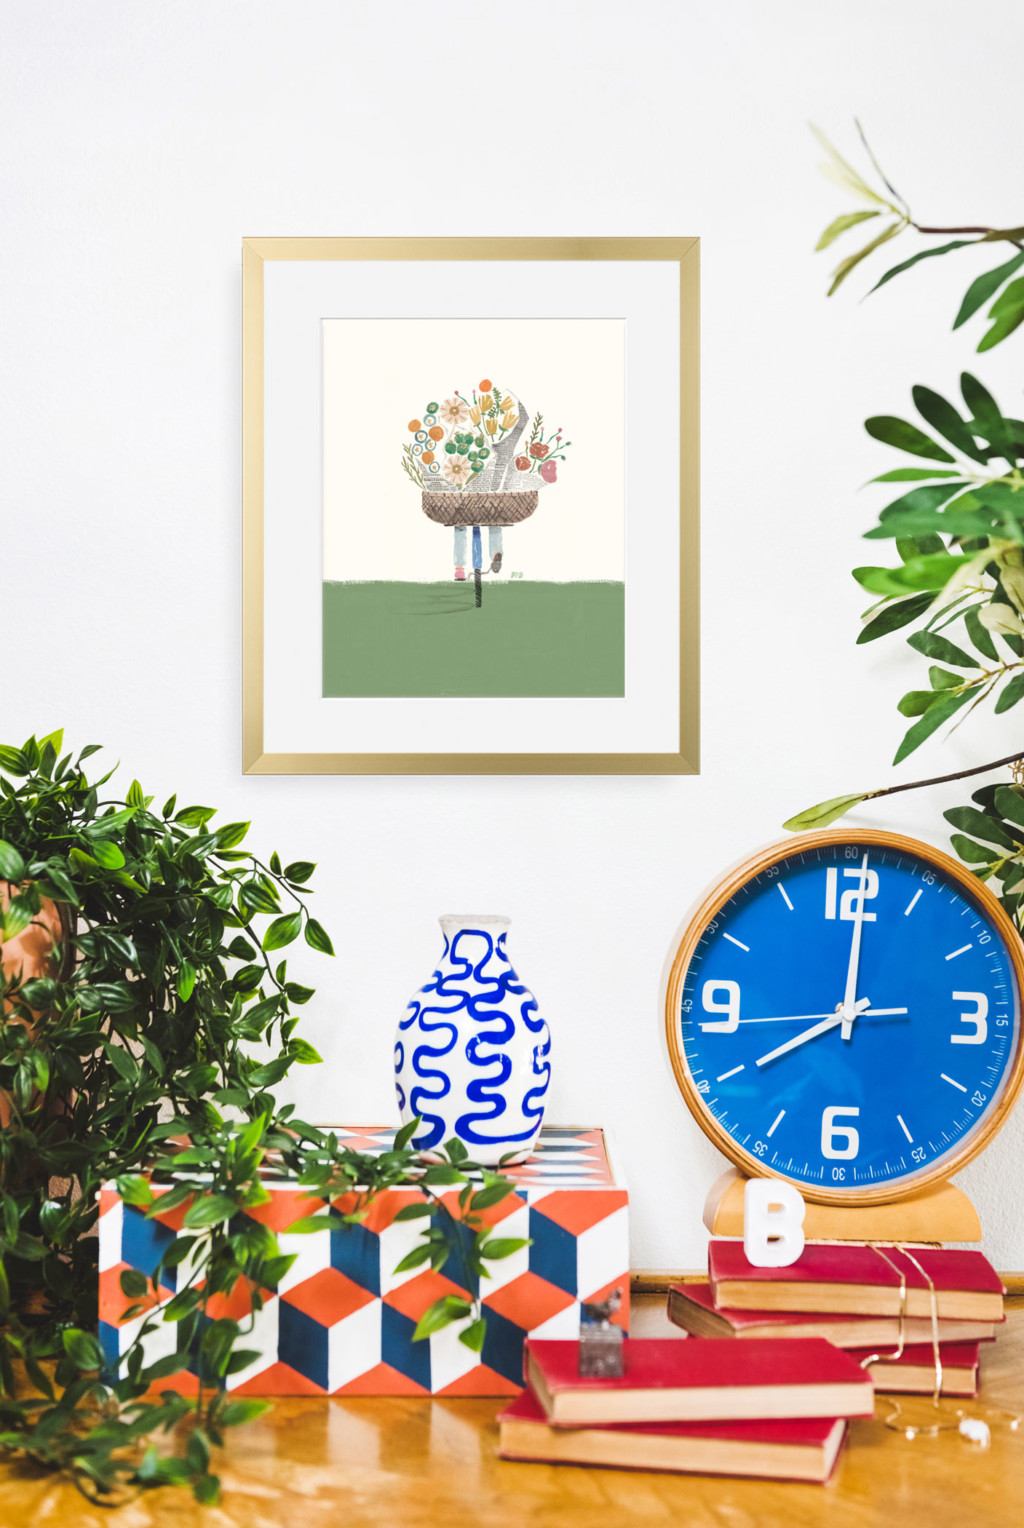 Art print of a person riding a bike with a basket full of flowers on a white wall with plants, a clock, and vases around.